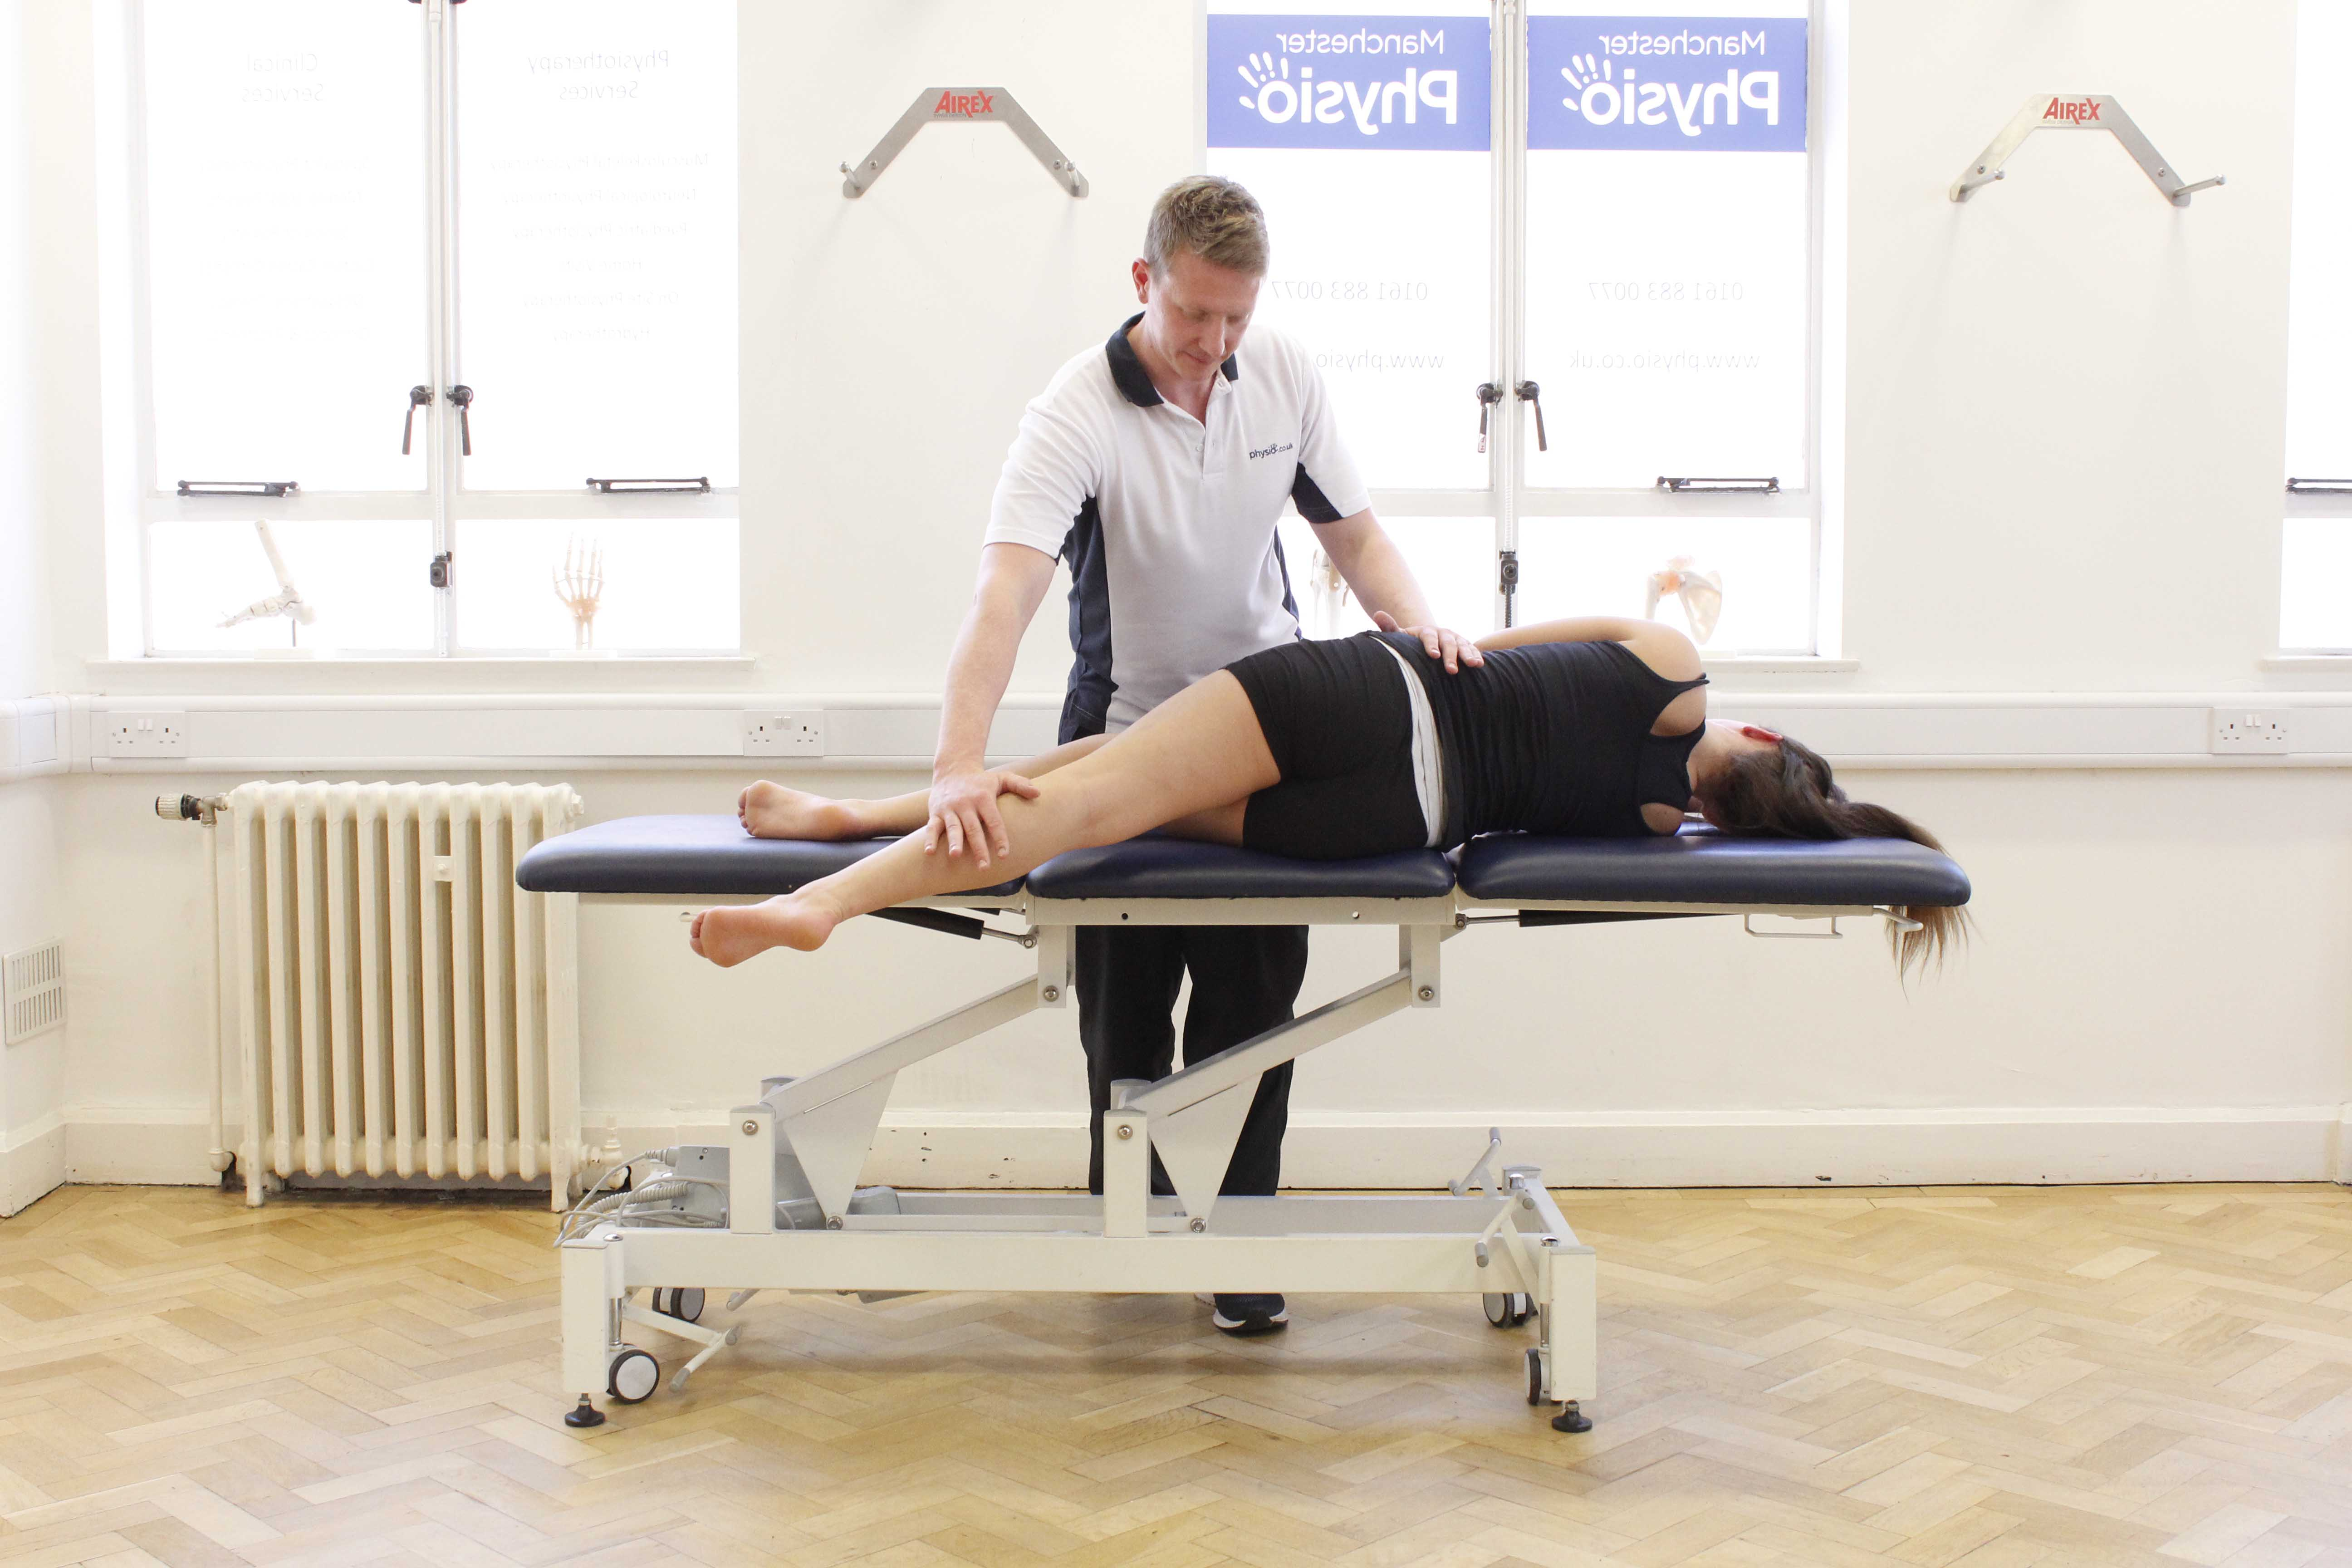 Knee stability and strengthening exercises assisted by an experienced therapist